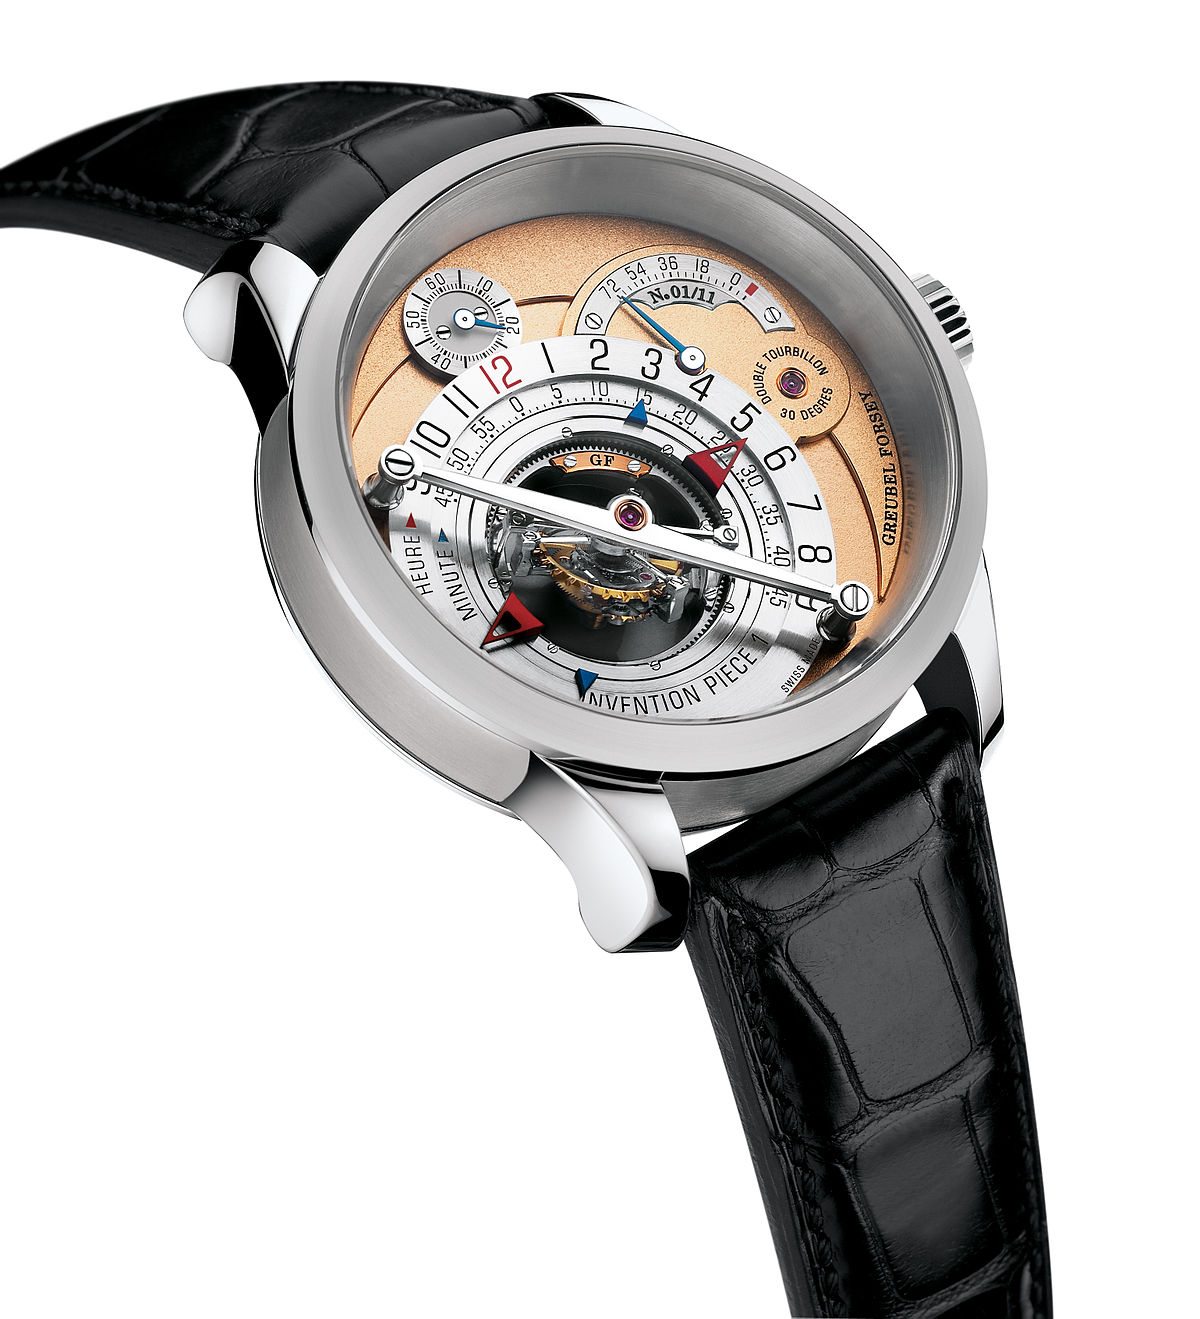 Complication horology wikipedia gumiabroncs Choice Image